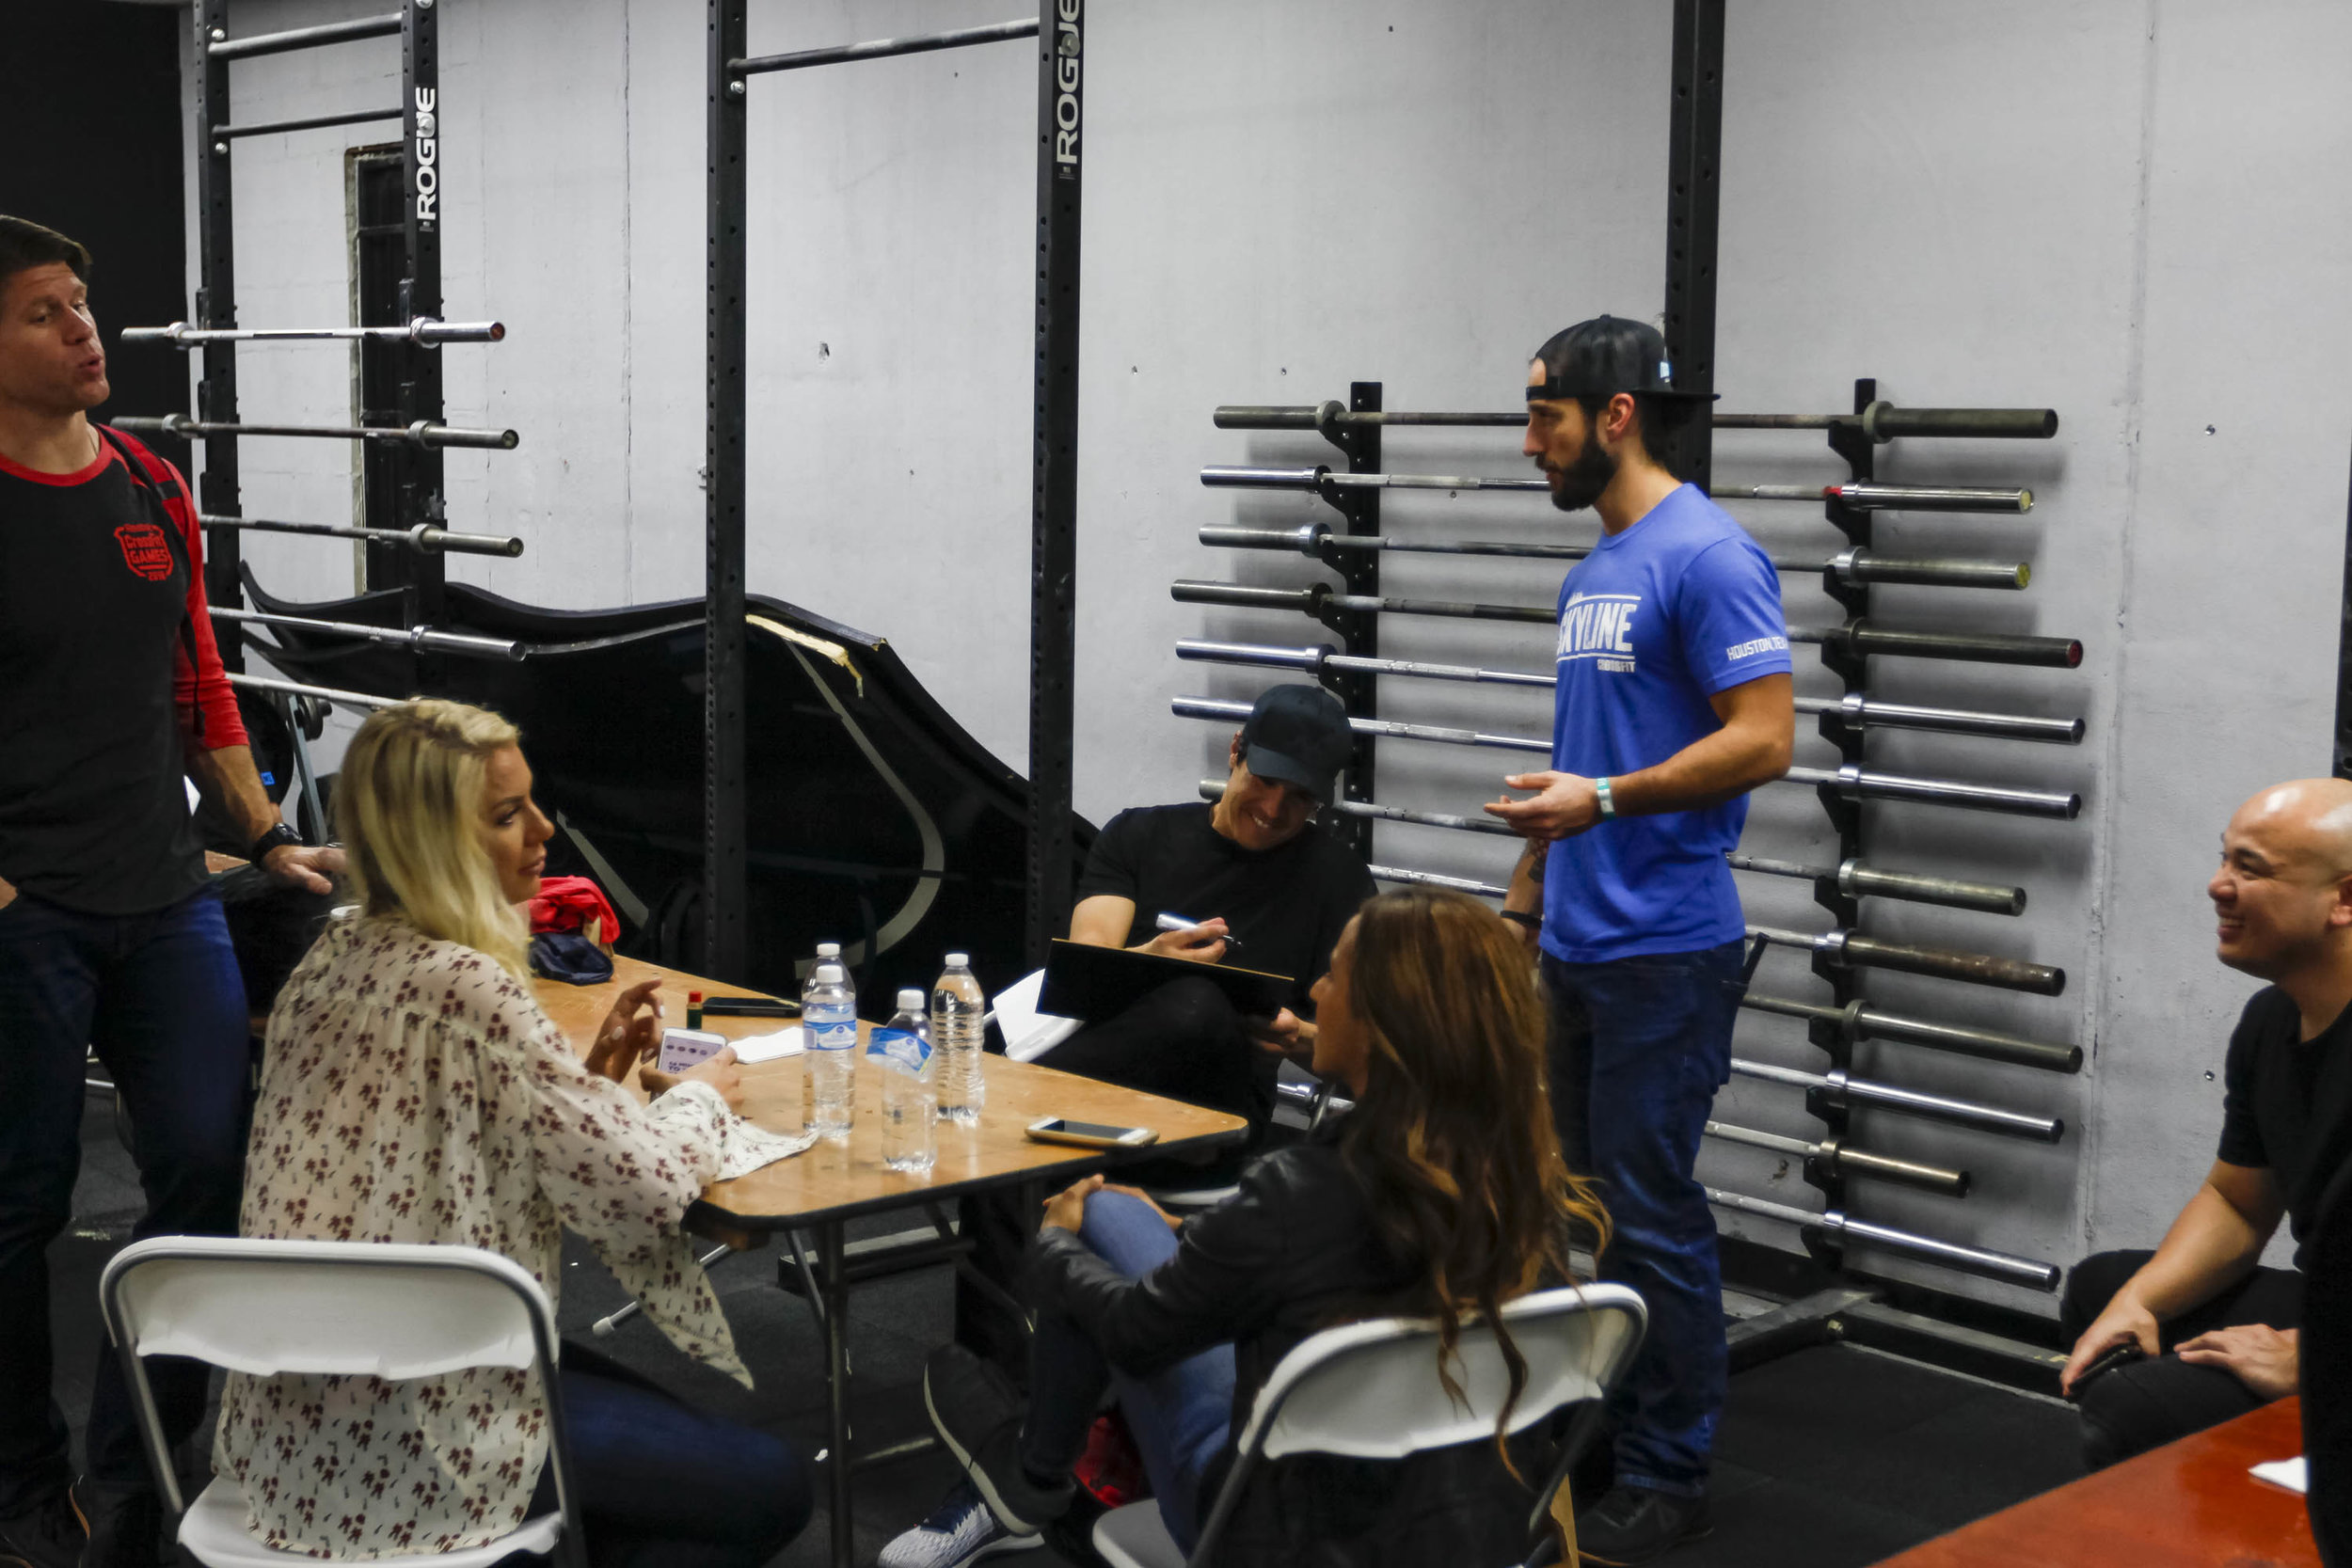 Dave Castro signing a picture for Skyline CrossFit during the 18.3 CrossFit Games live announcement in the wake of Hurricane Harvey.